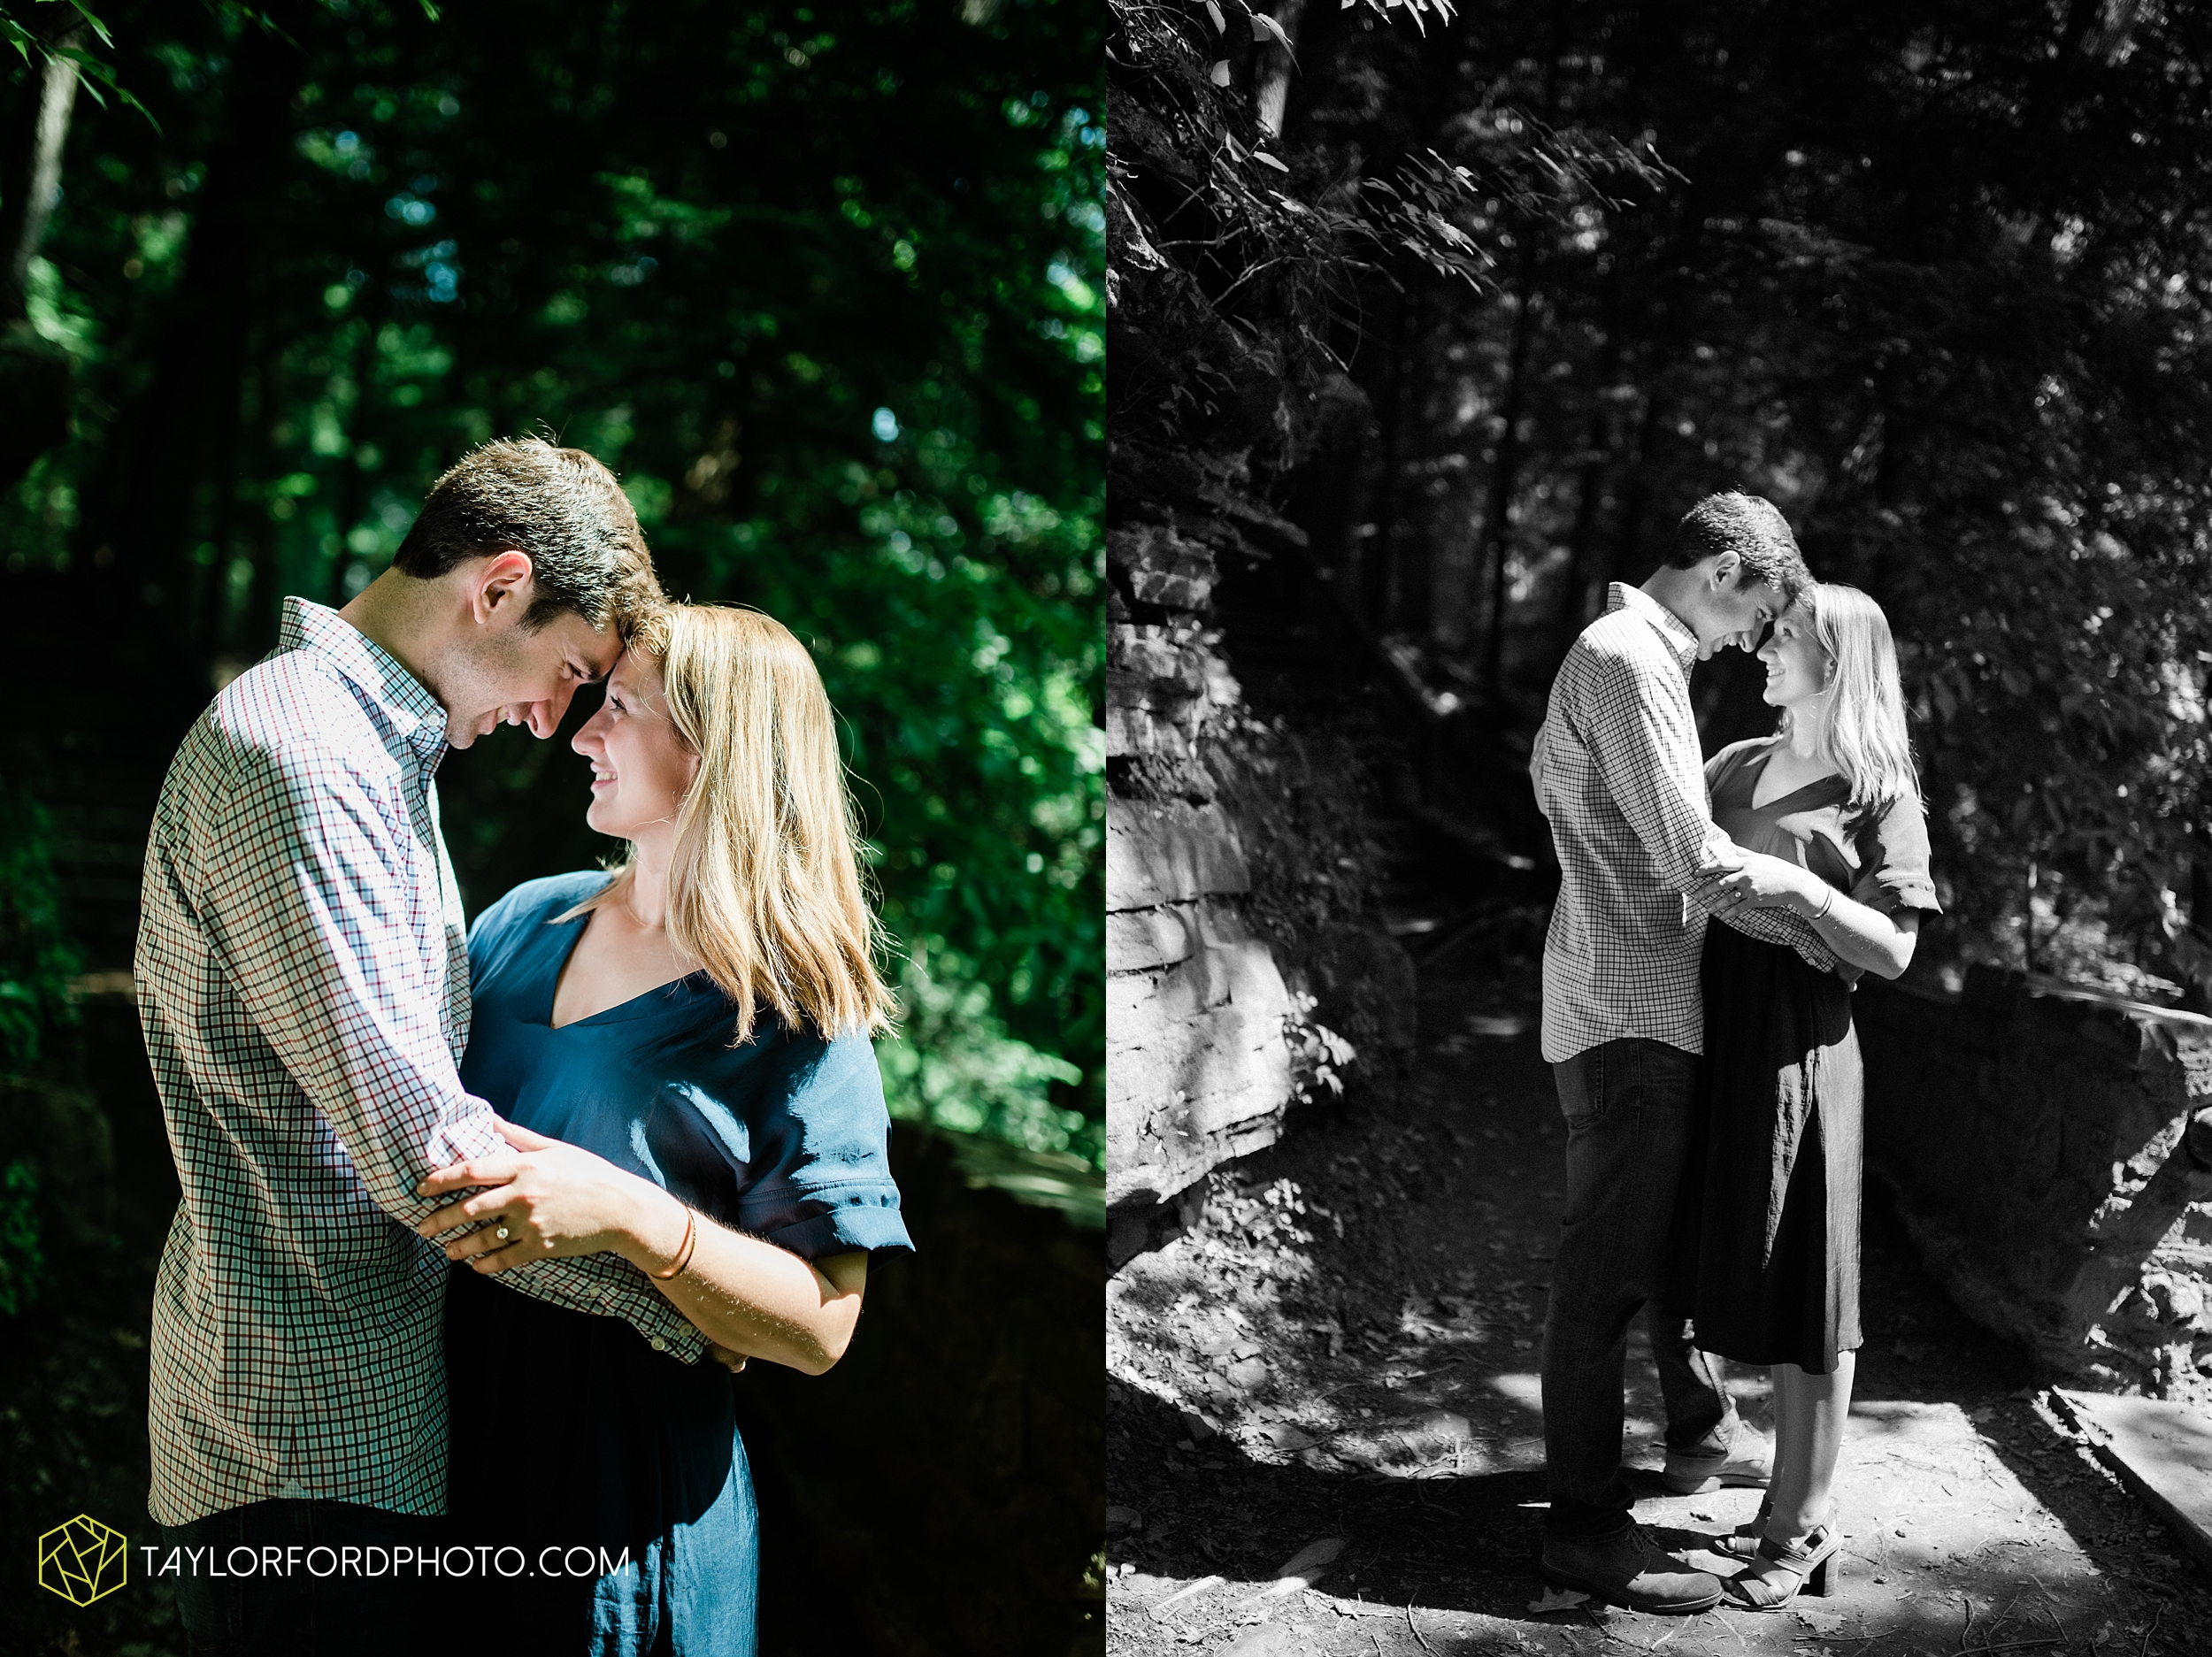 margo-evan-kohler-south-chagrin-reservation-chagrin-falls-cleveland-ohio-engagement-wedding-photographer-Taylor-Ford-Photography_8190.jpg